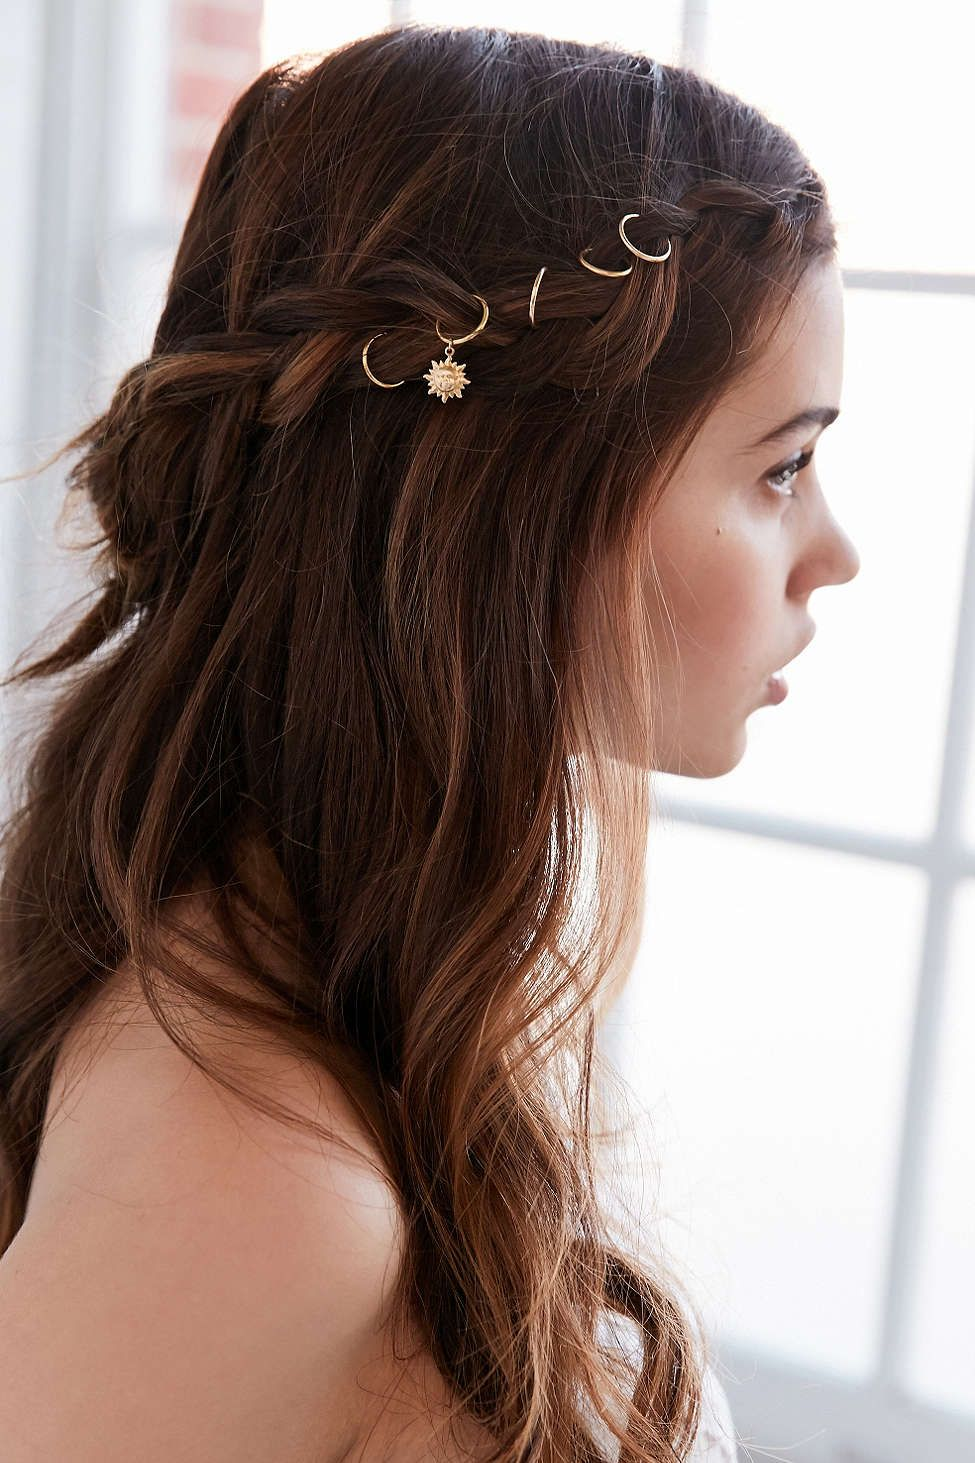 Regal rose sun charm braid ring hair envy pinterest hair hair